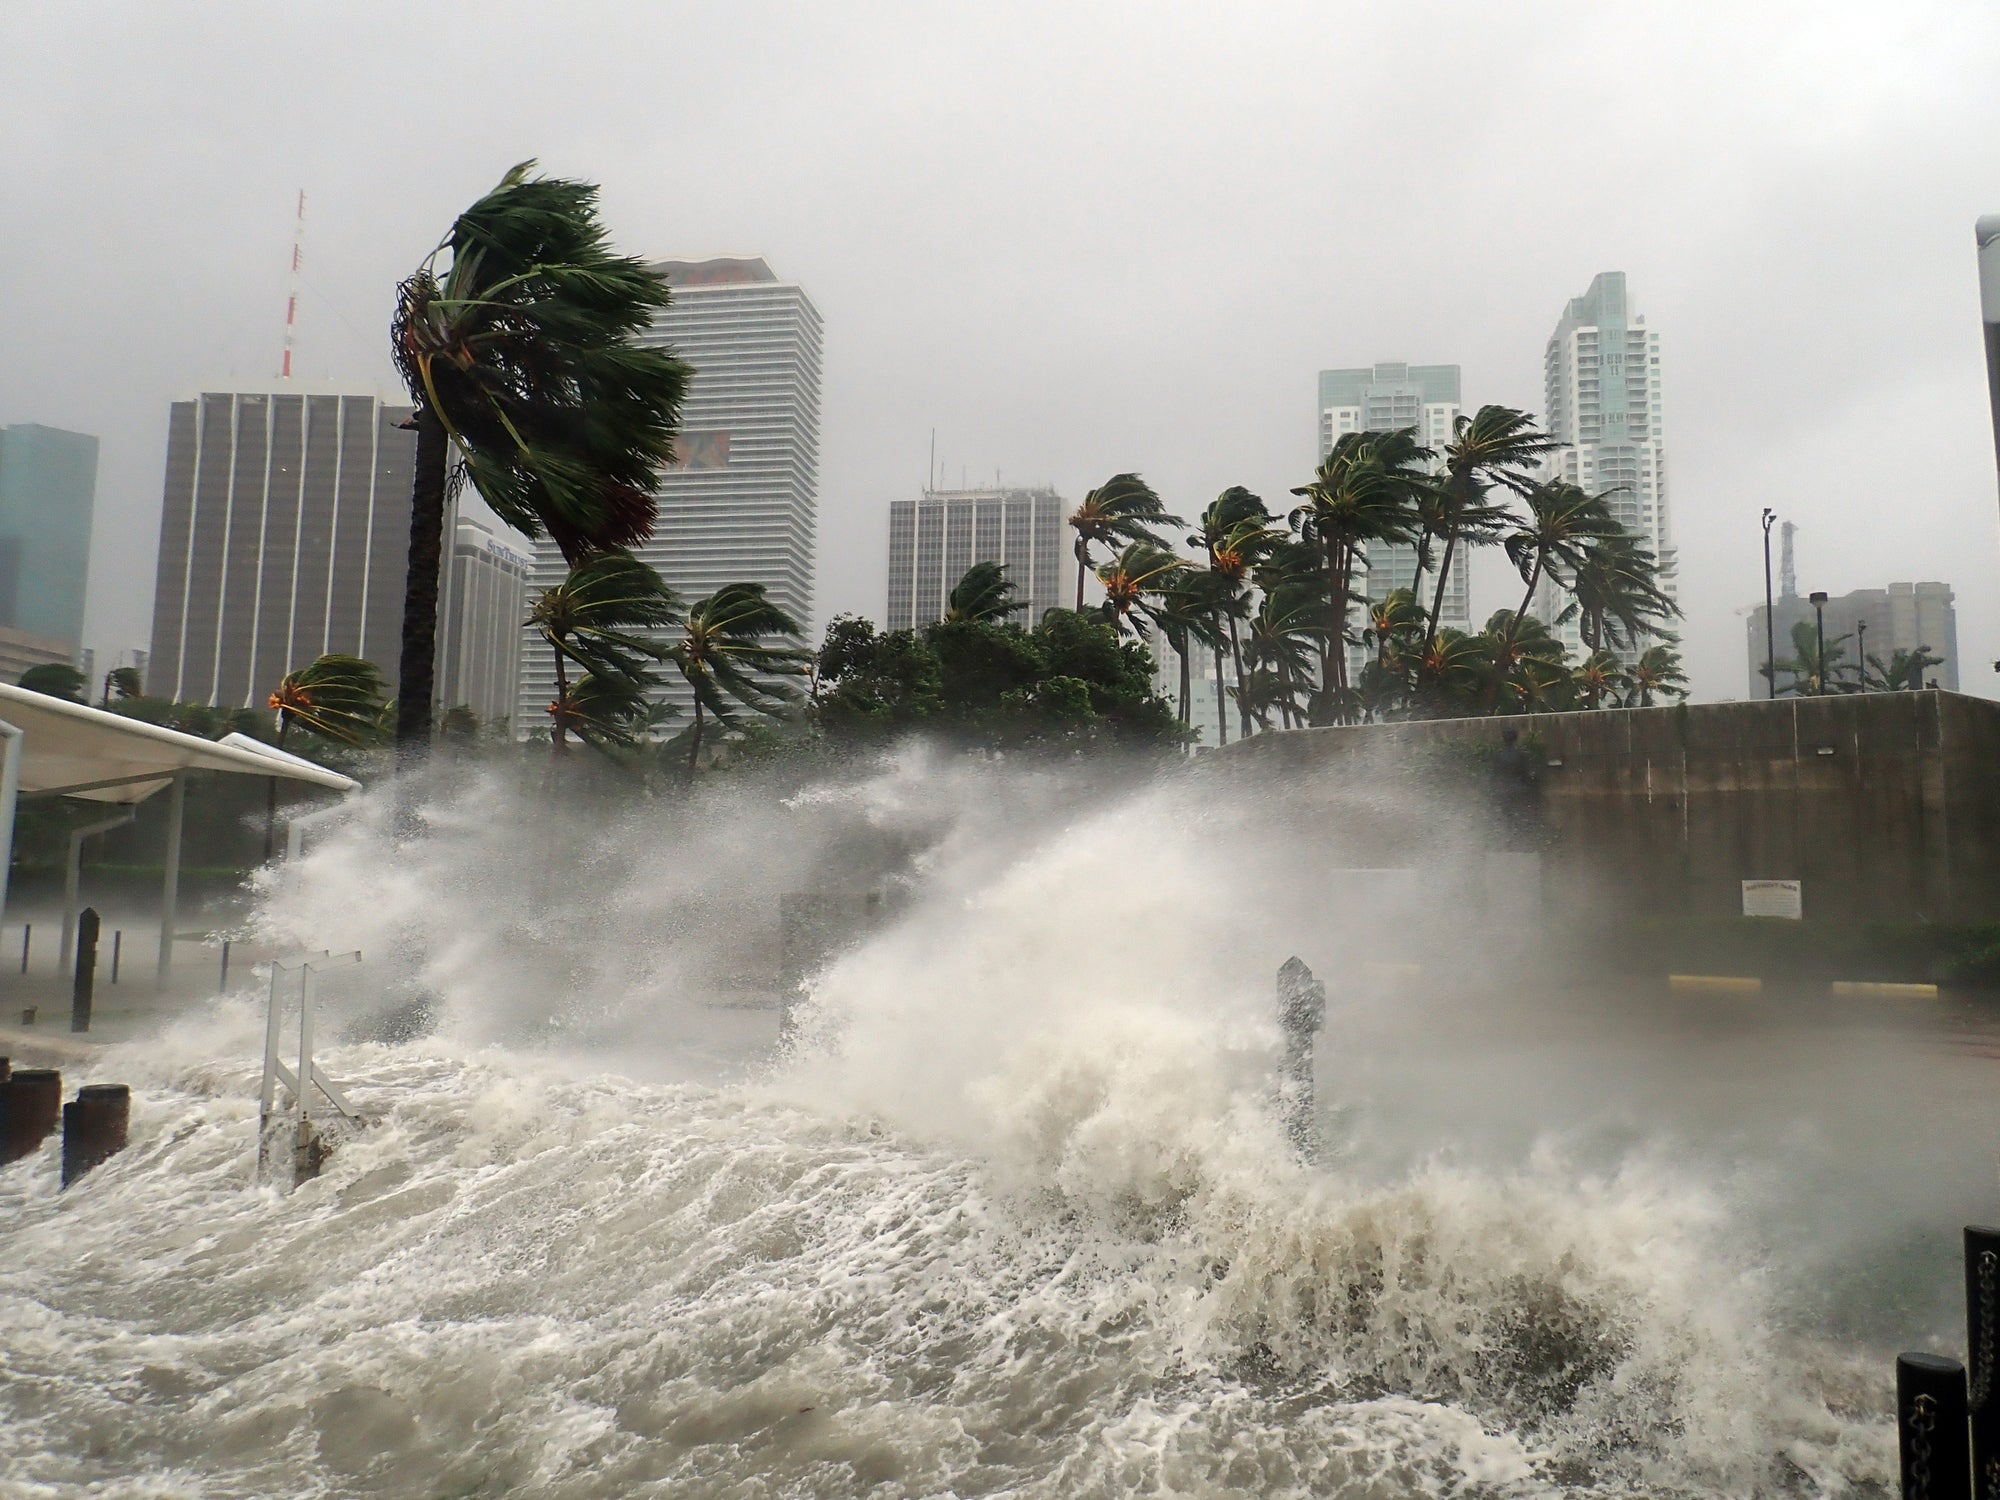 Caught in a Flash Flood? Here's What You Should Do